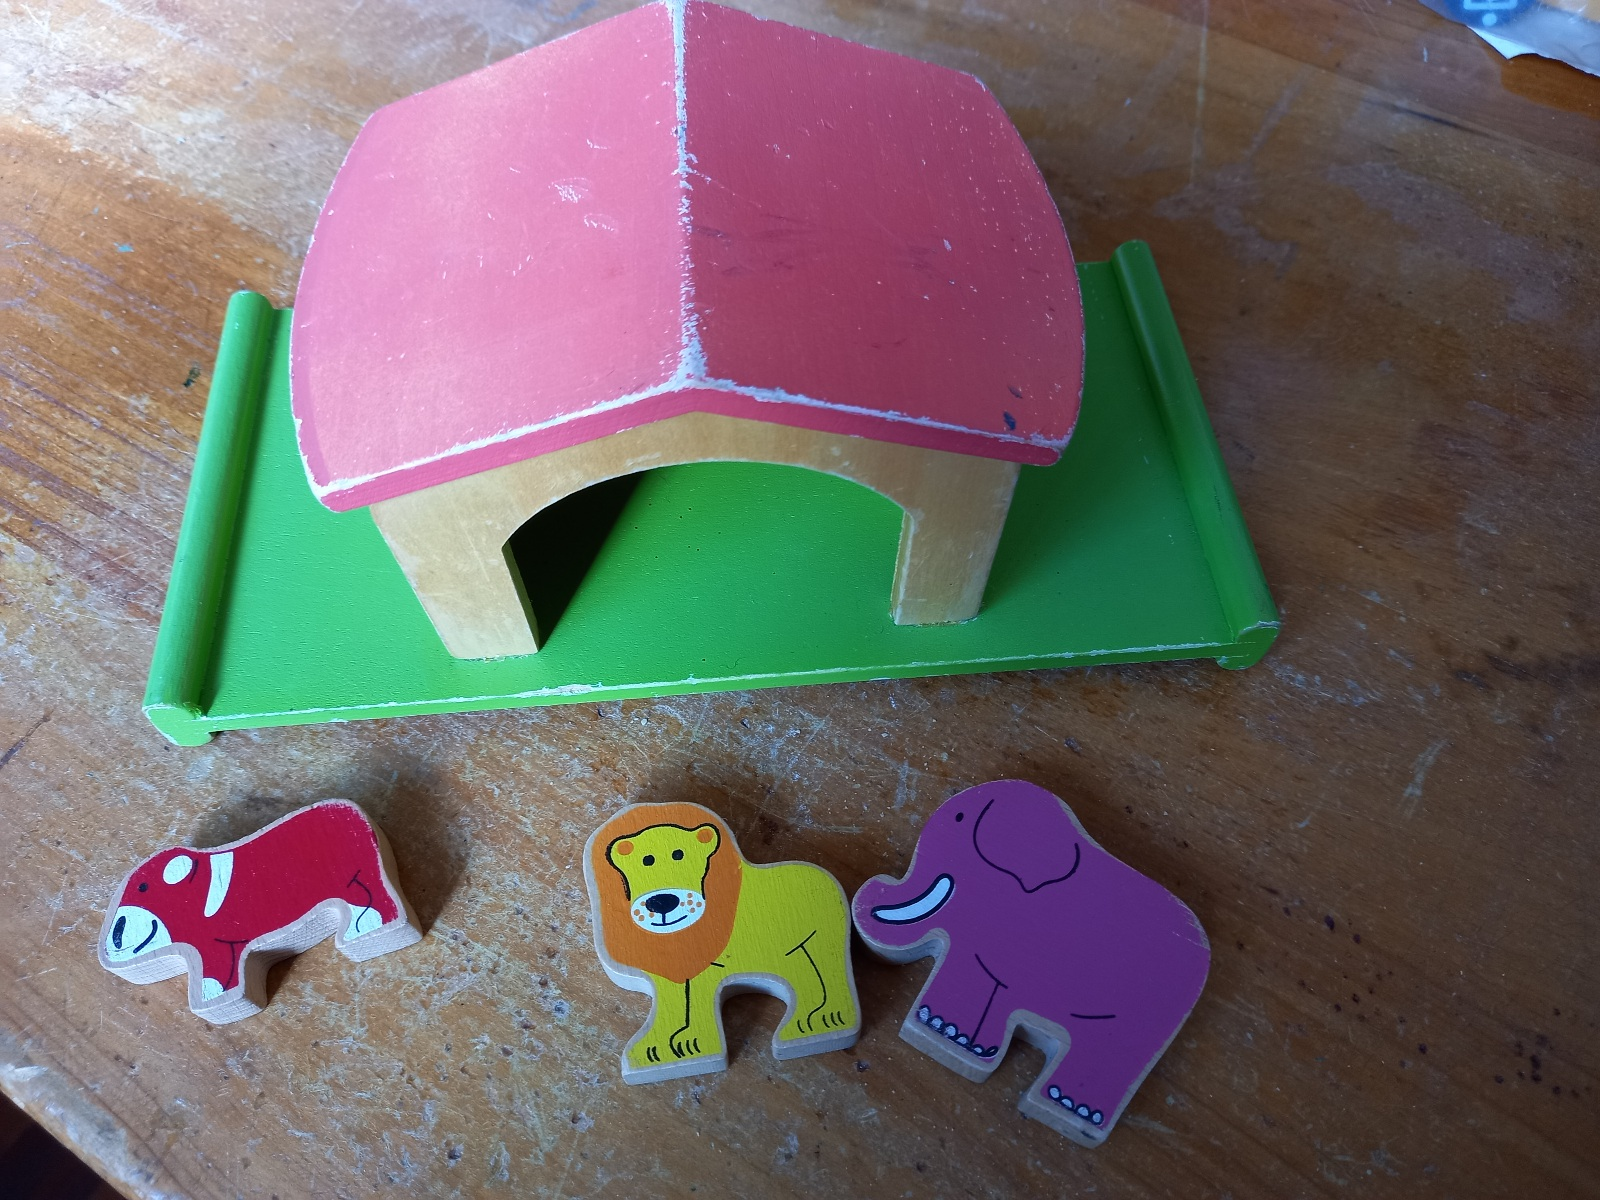 wooden stable with animals